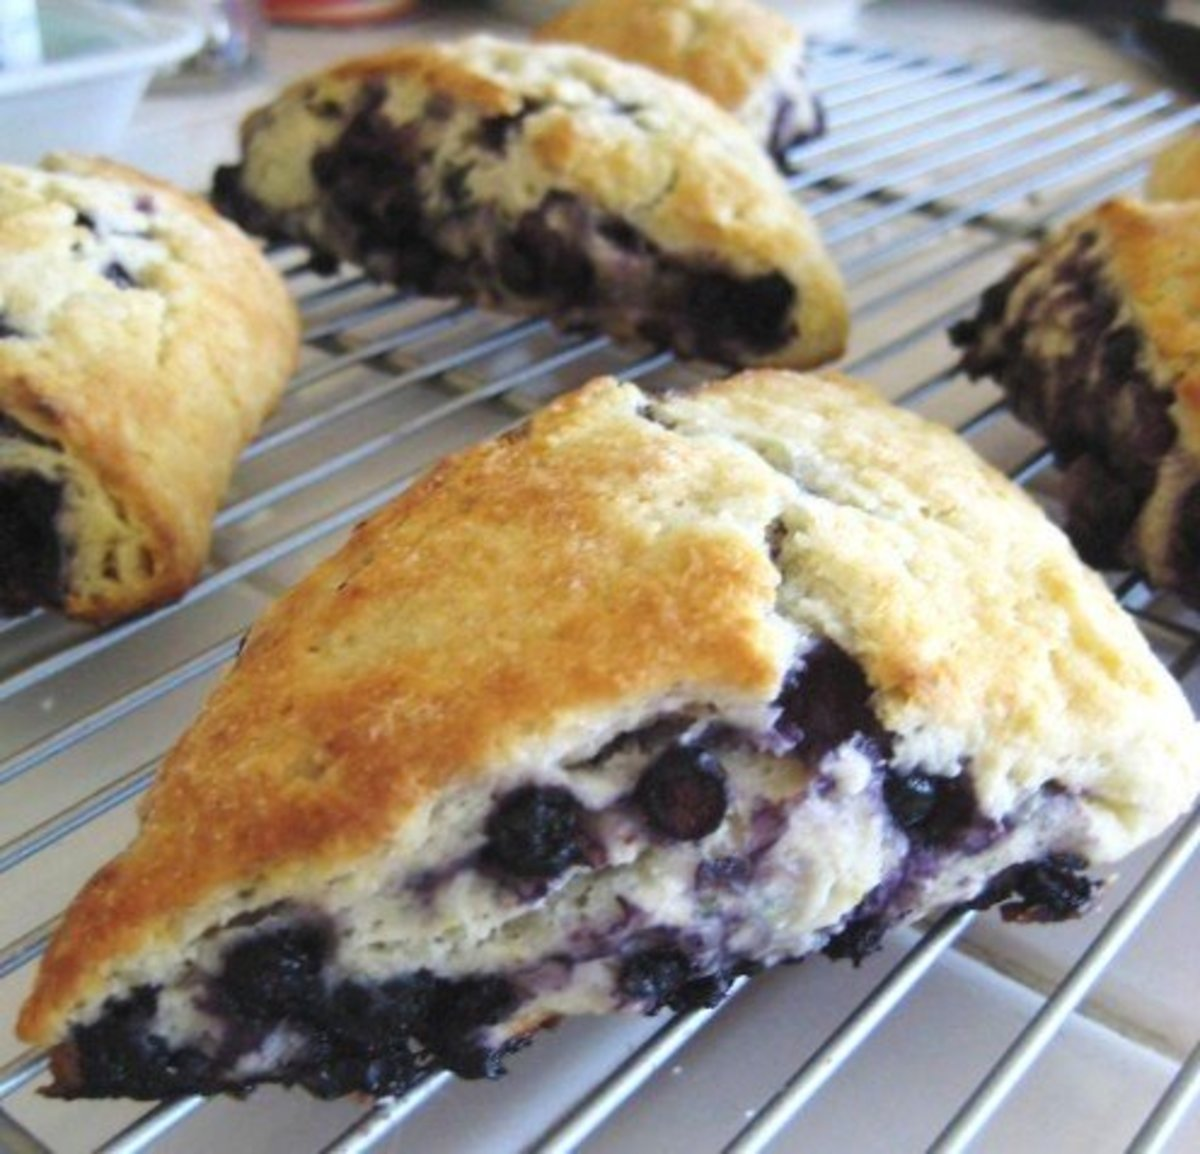 Stuffed full of blueberries, these biscuits offer color and flavor.